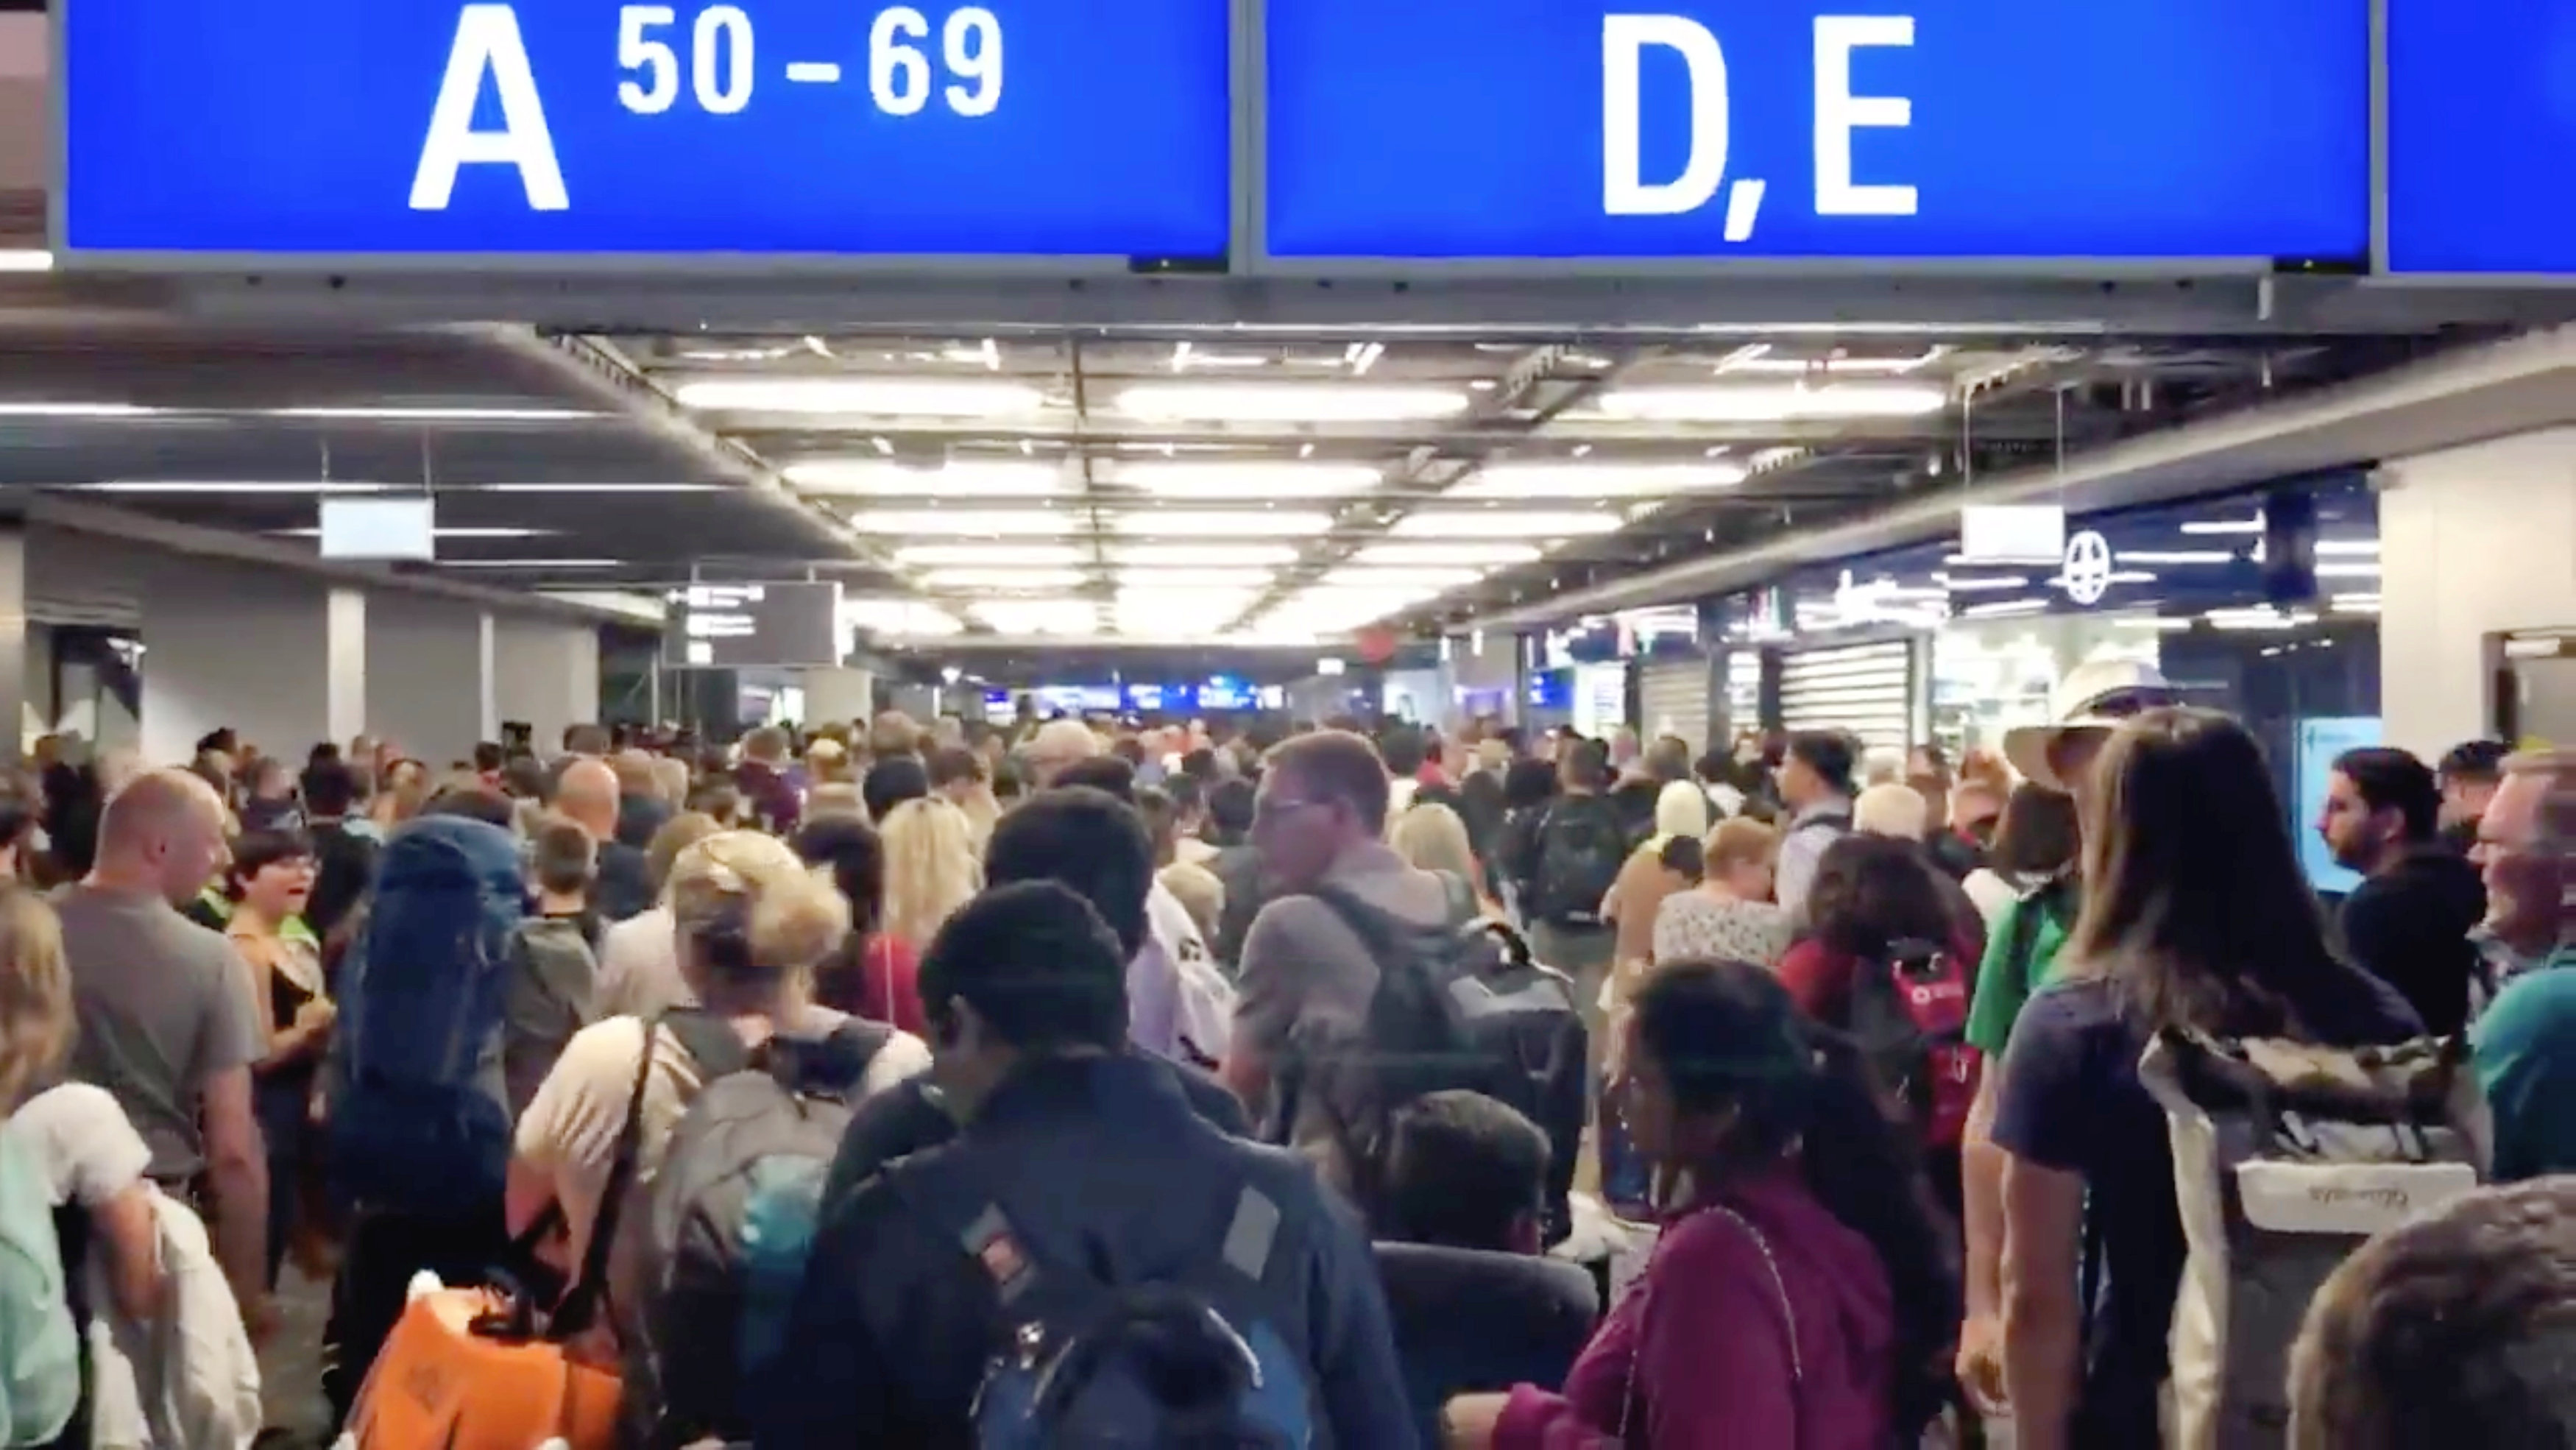 People are seen waiting at the Frankfurt Airport due to the evacuation in Frankfurt